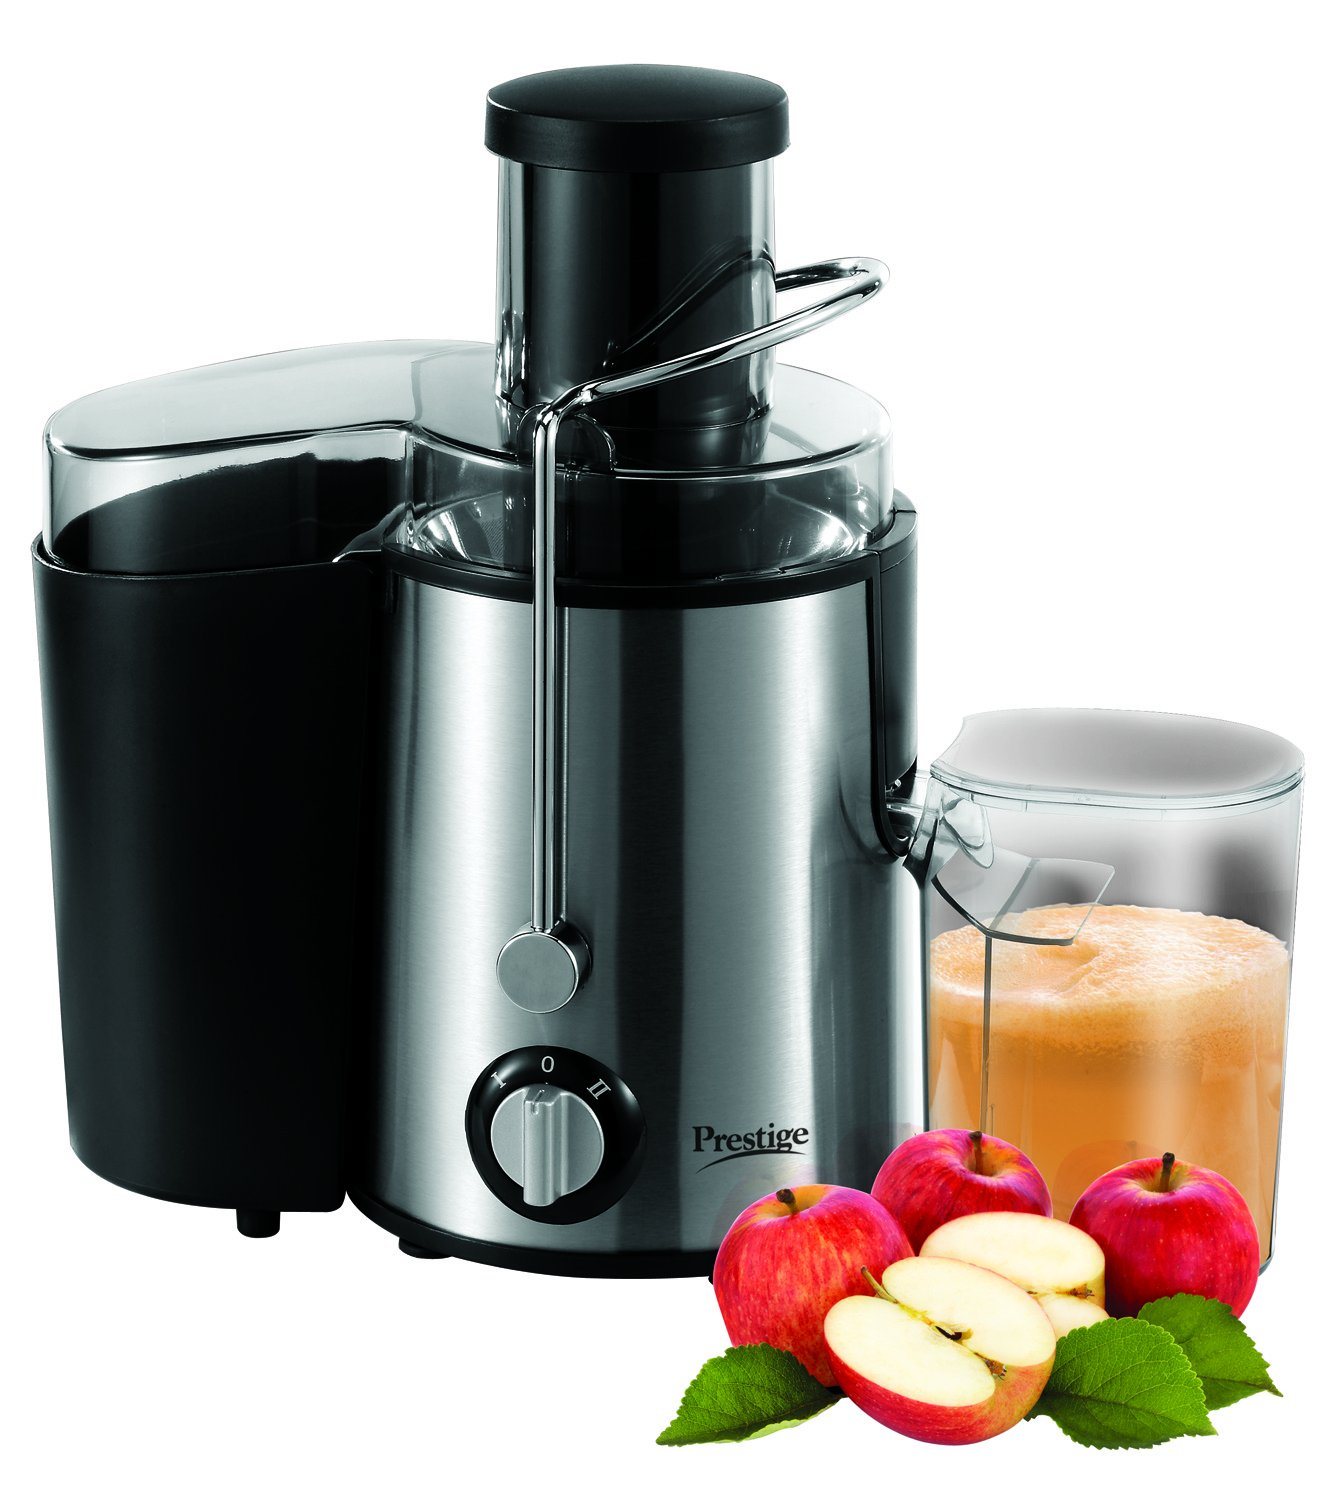 Prestige Slow Juicer Reviews : Best Juicers in India 2018 - Reviews And Comparisons